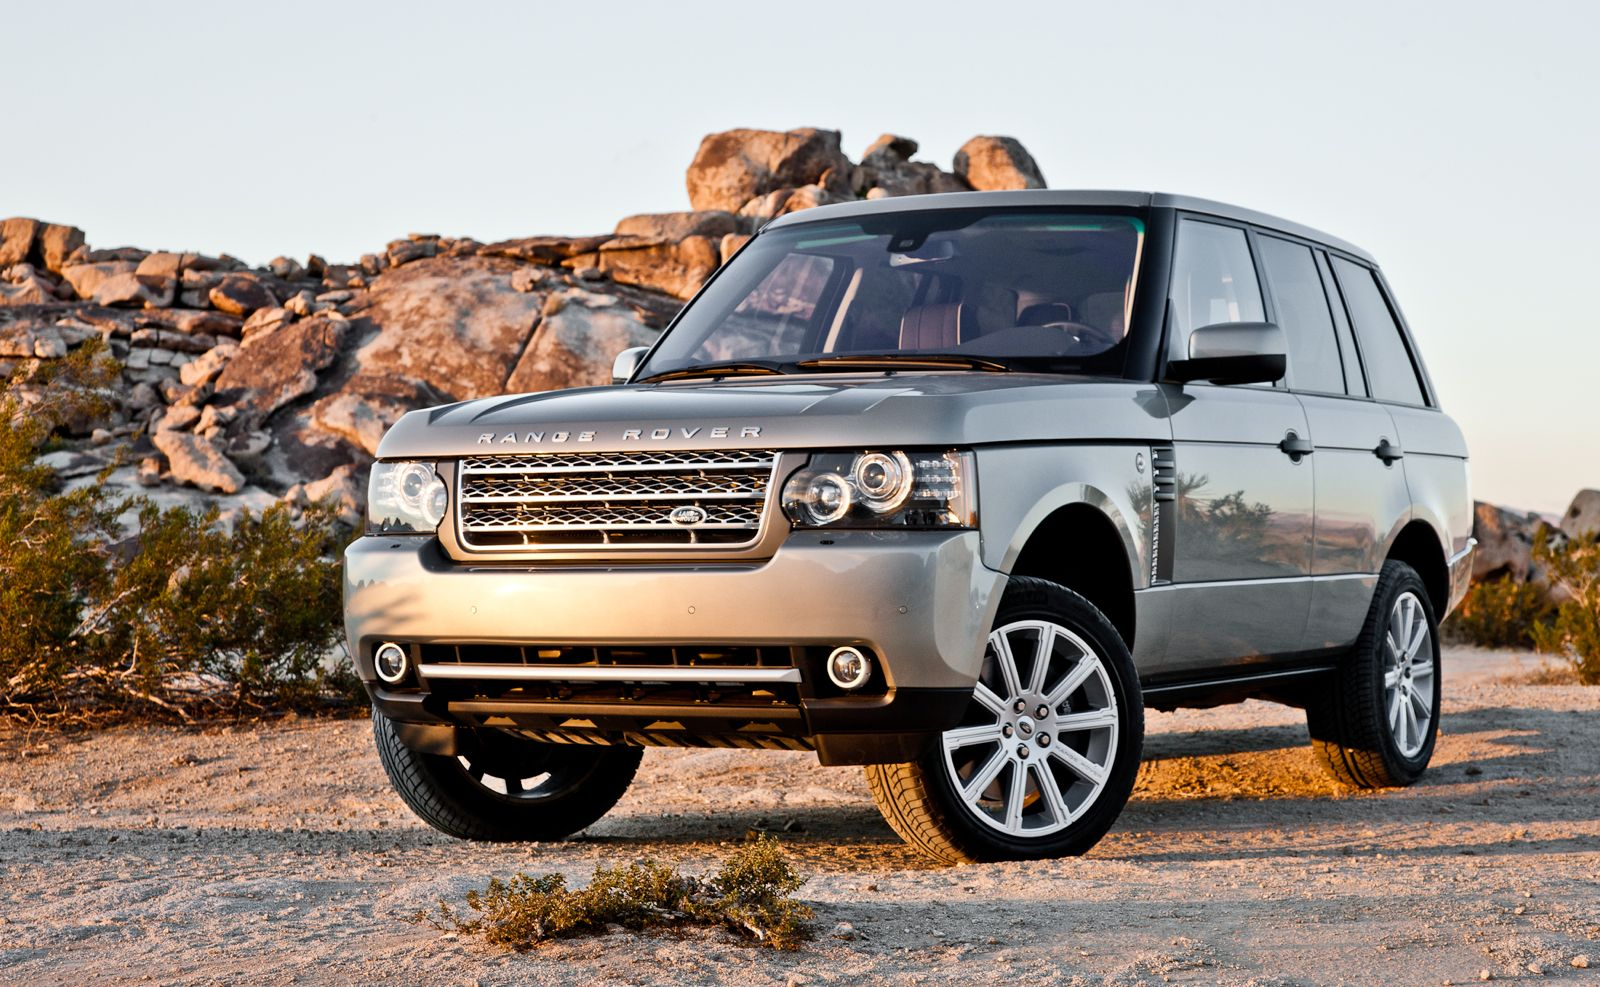 2012 land rover range rover review and news motorauthority. Black Bedroom Furniture Sets. Home Design Ideas